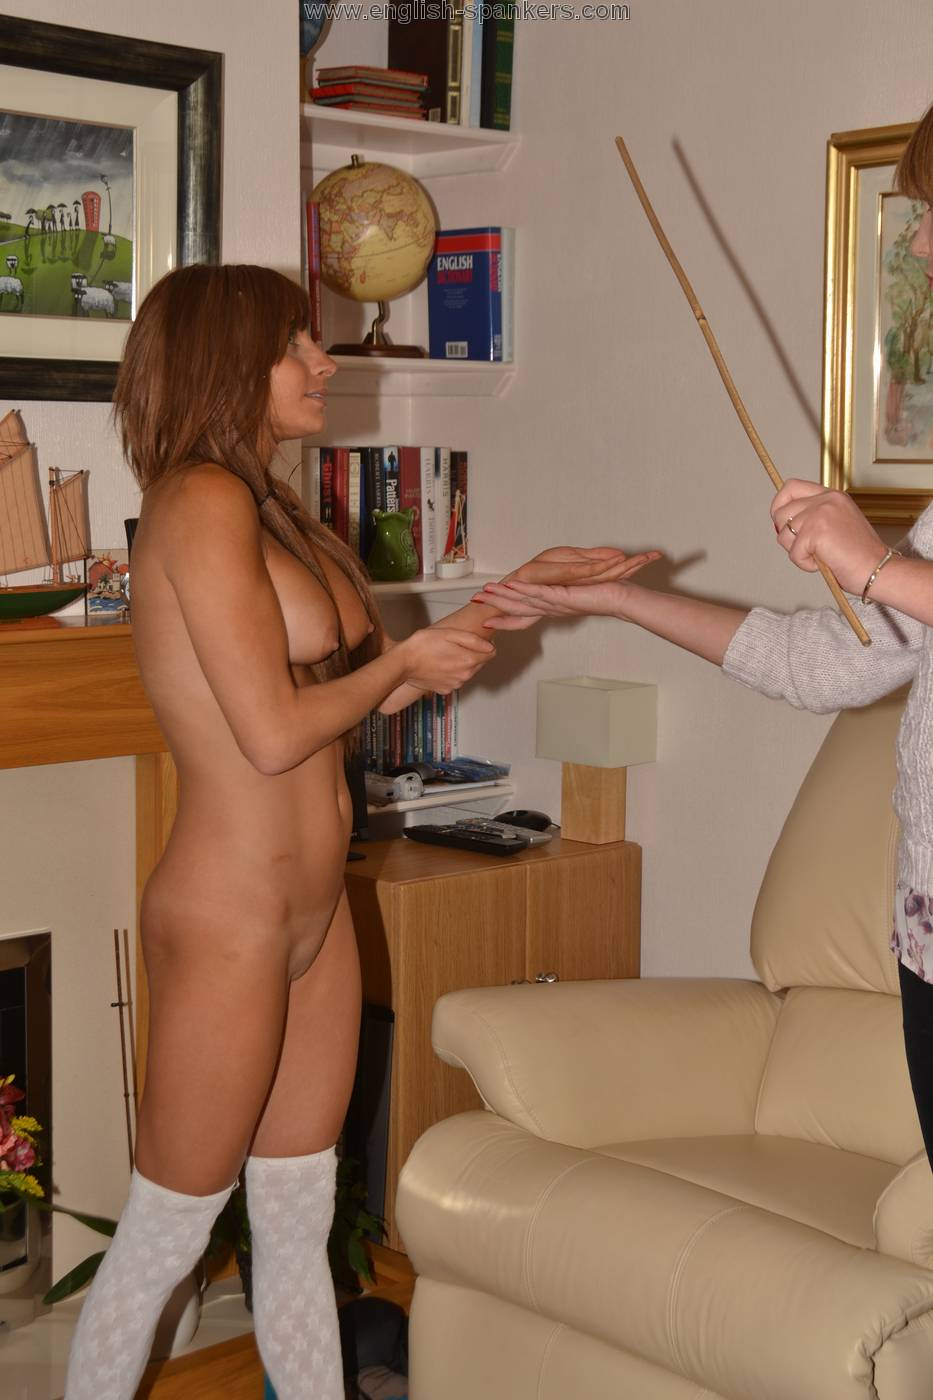 Idea)))) Now Girl being spanked naked really